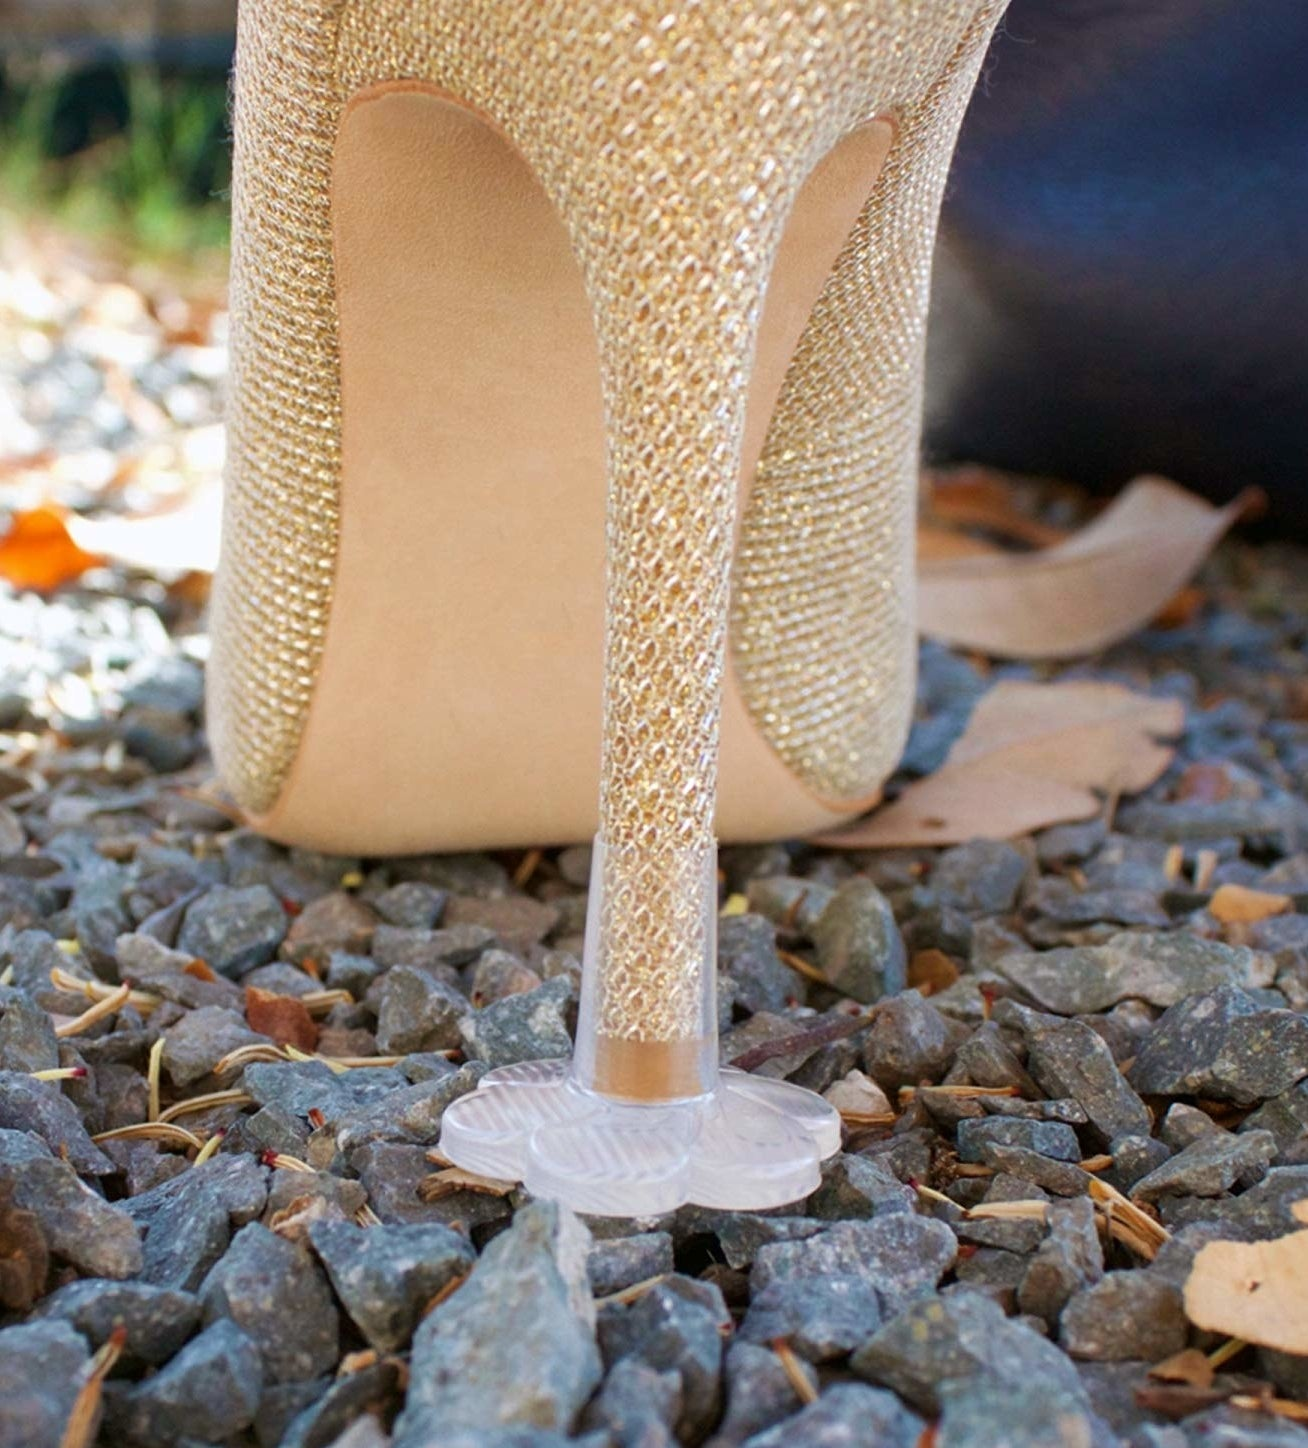 plastic flower-shaped cap on stiletto heel keeping it from sinking into gravel